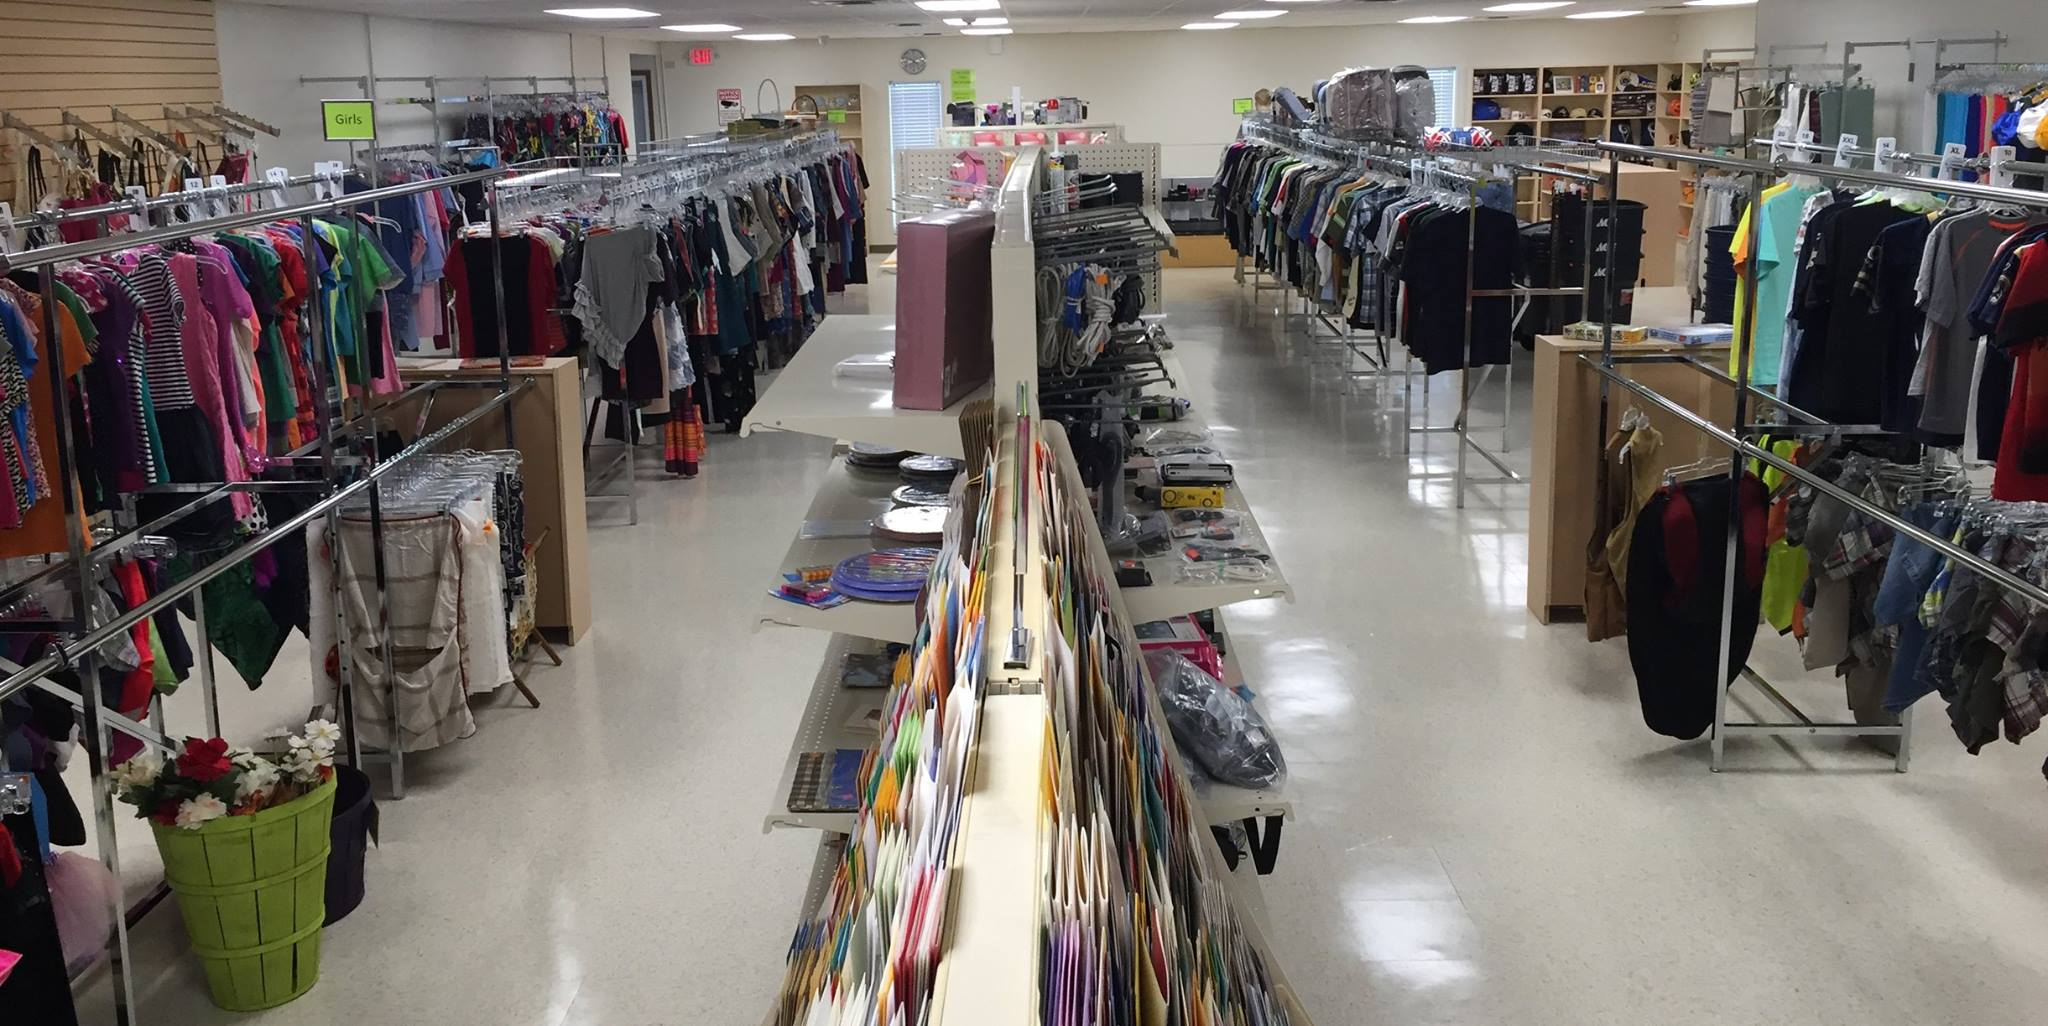 b1c50208 Open to the public 6 days per week. The Thrift Store is for shoppers  looking for great buys at low prices.